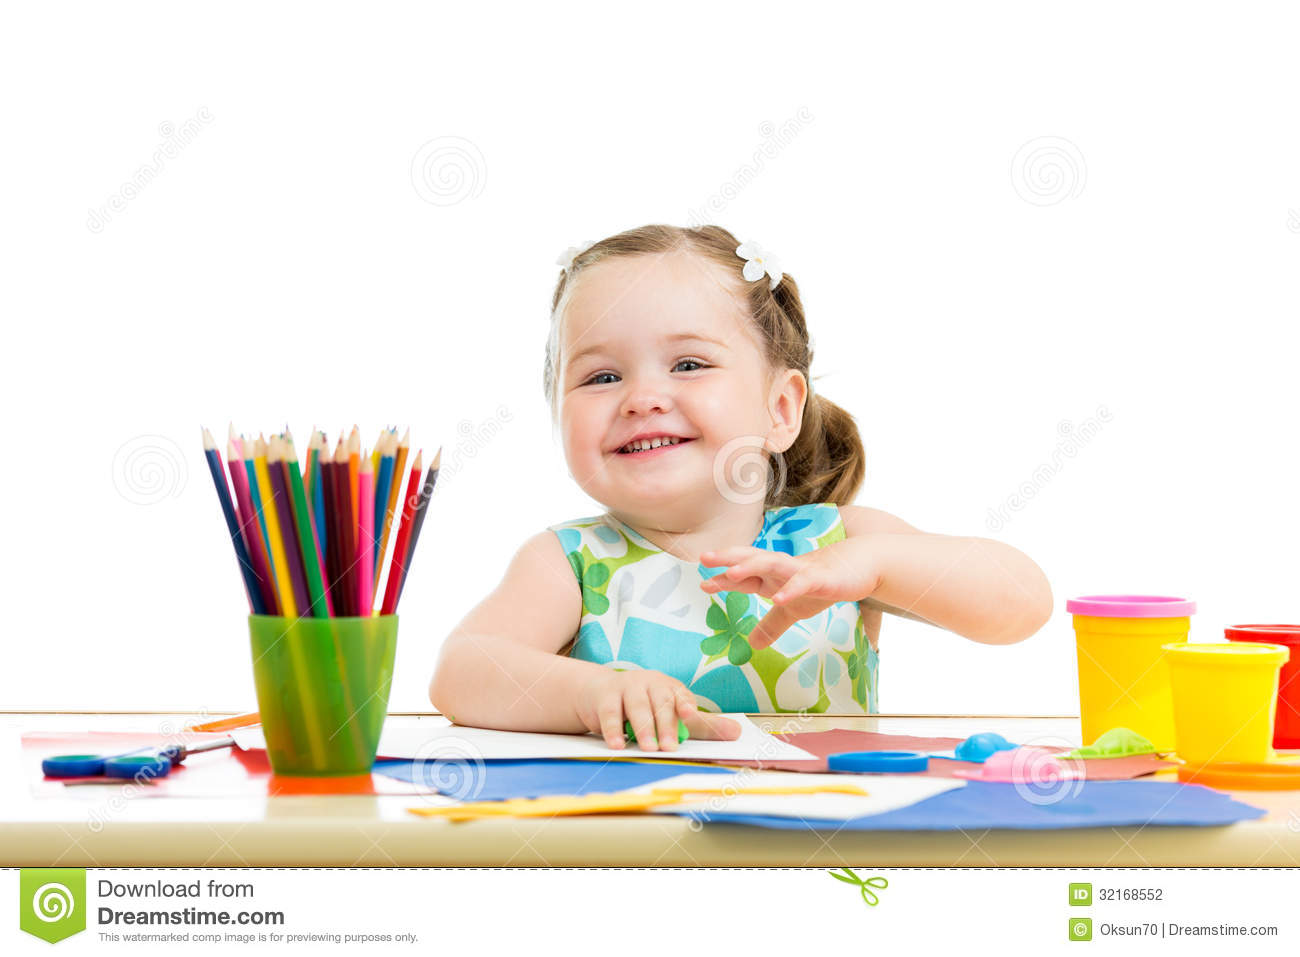 Kid Girl Drawing And Making By Hands Stock Photo - Image: 47287271